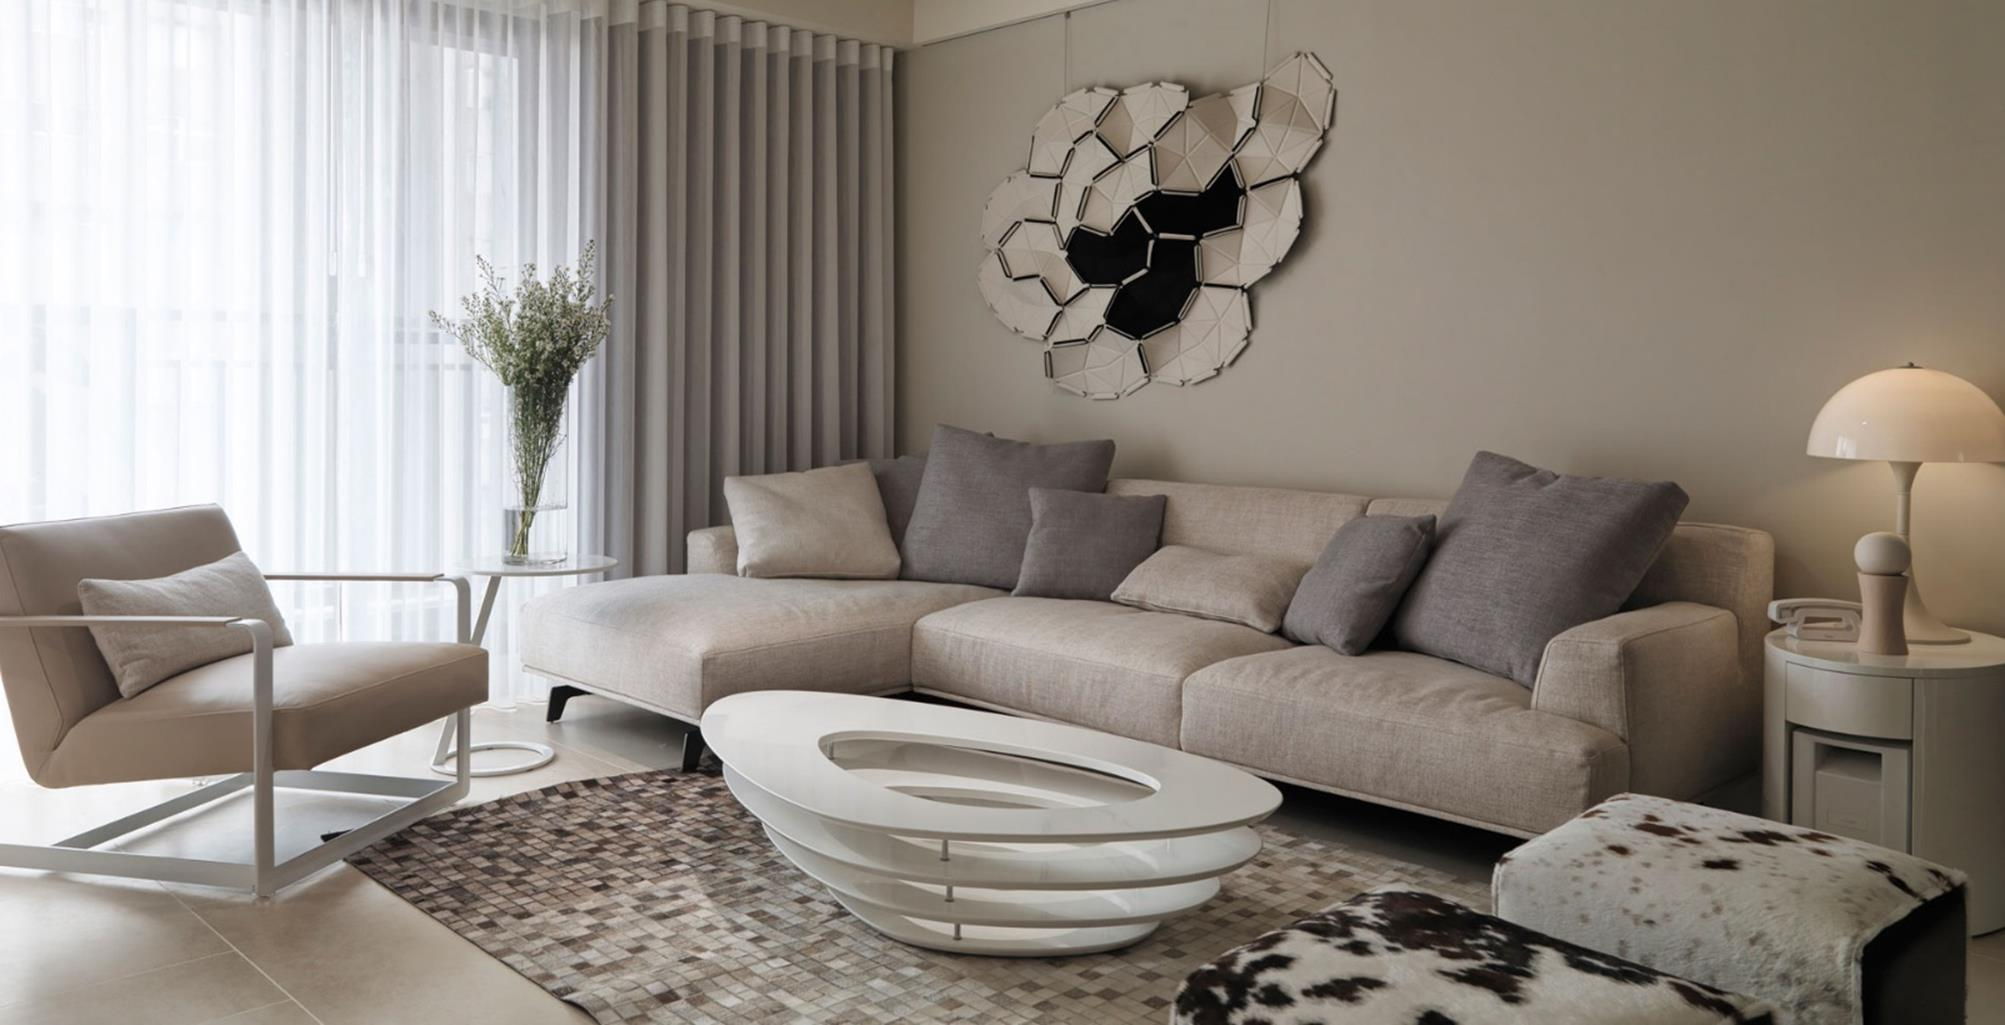 Best Neutral Paint Colors For Living Room 28